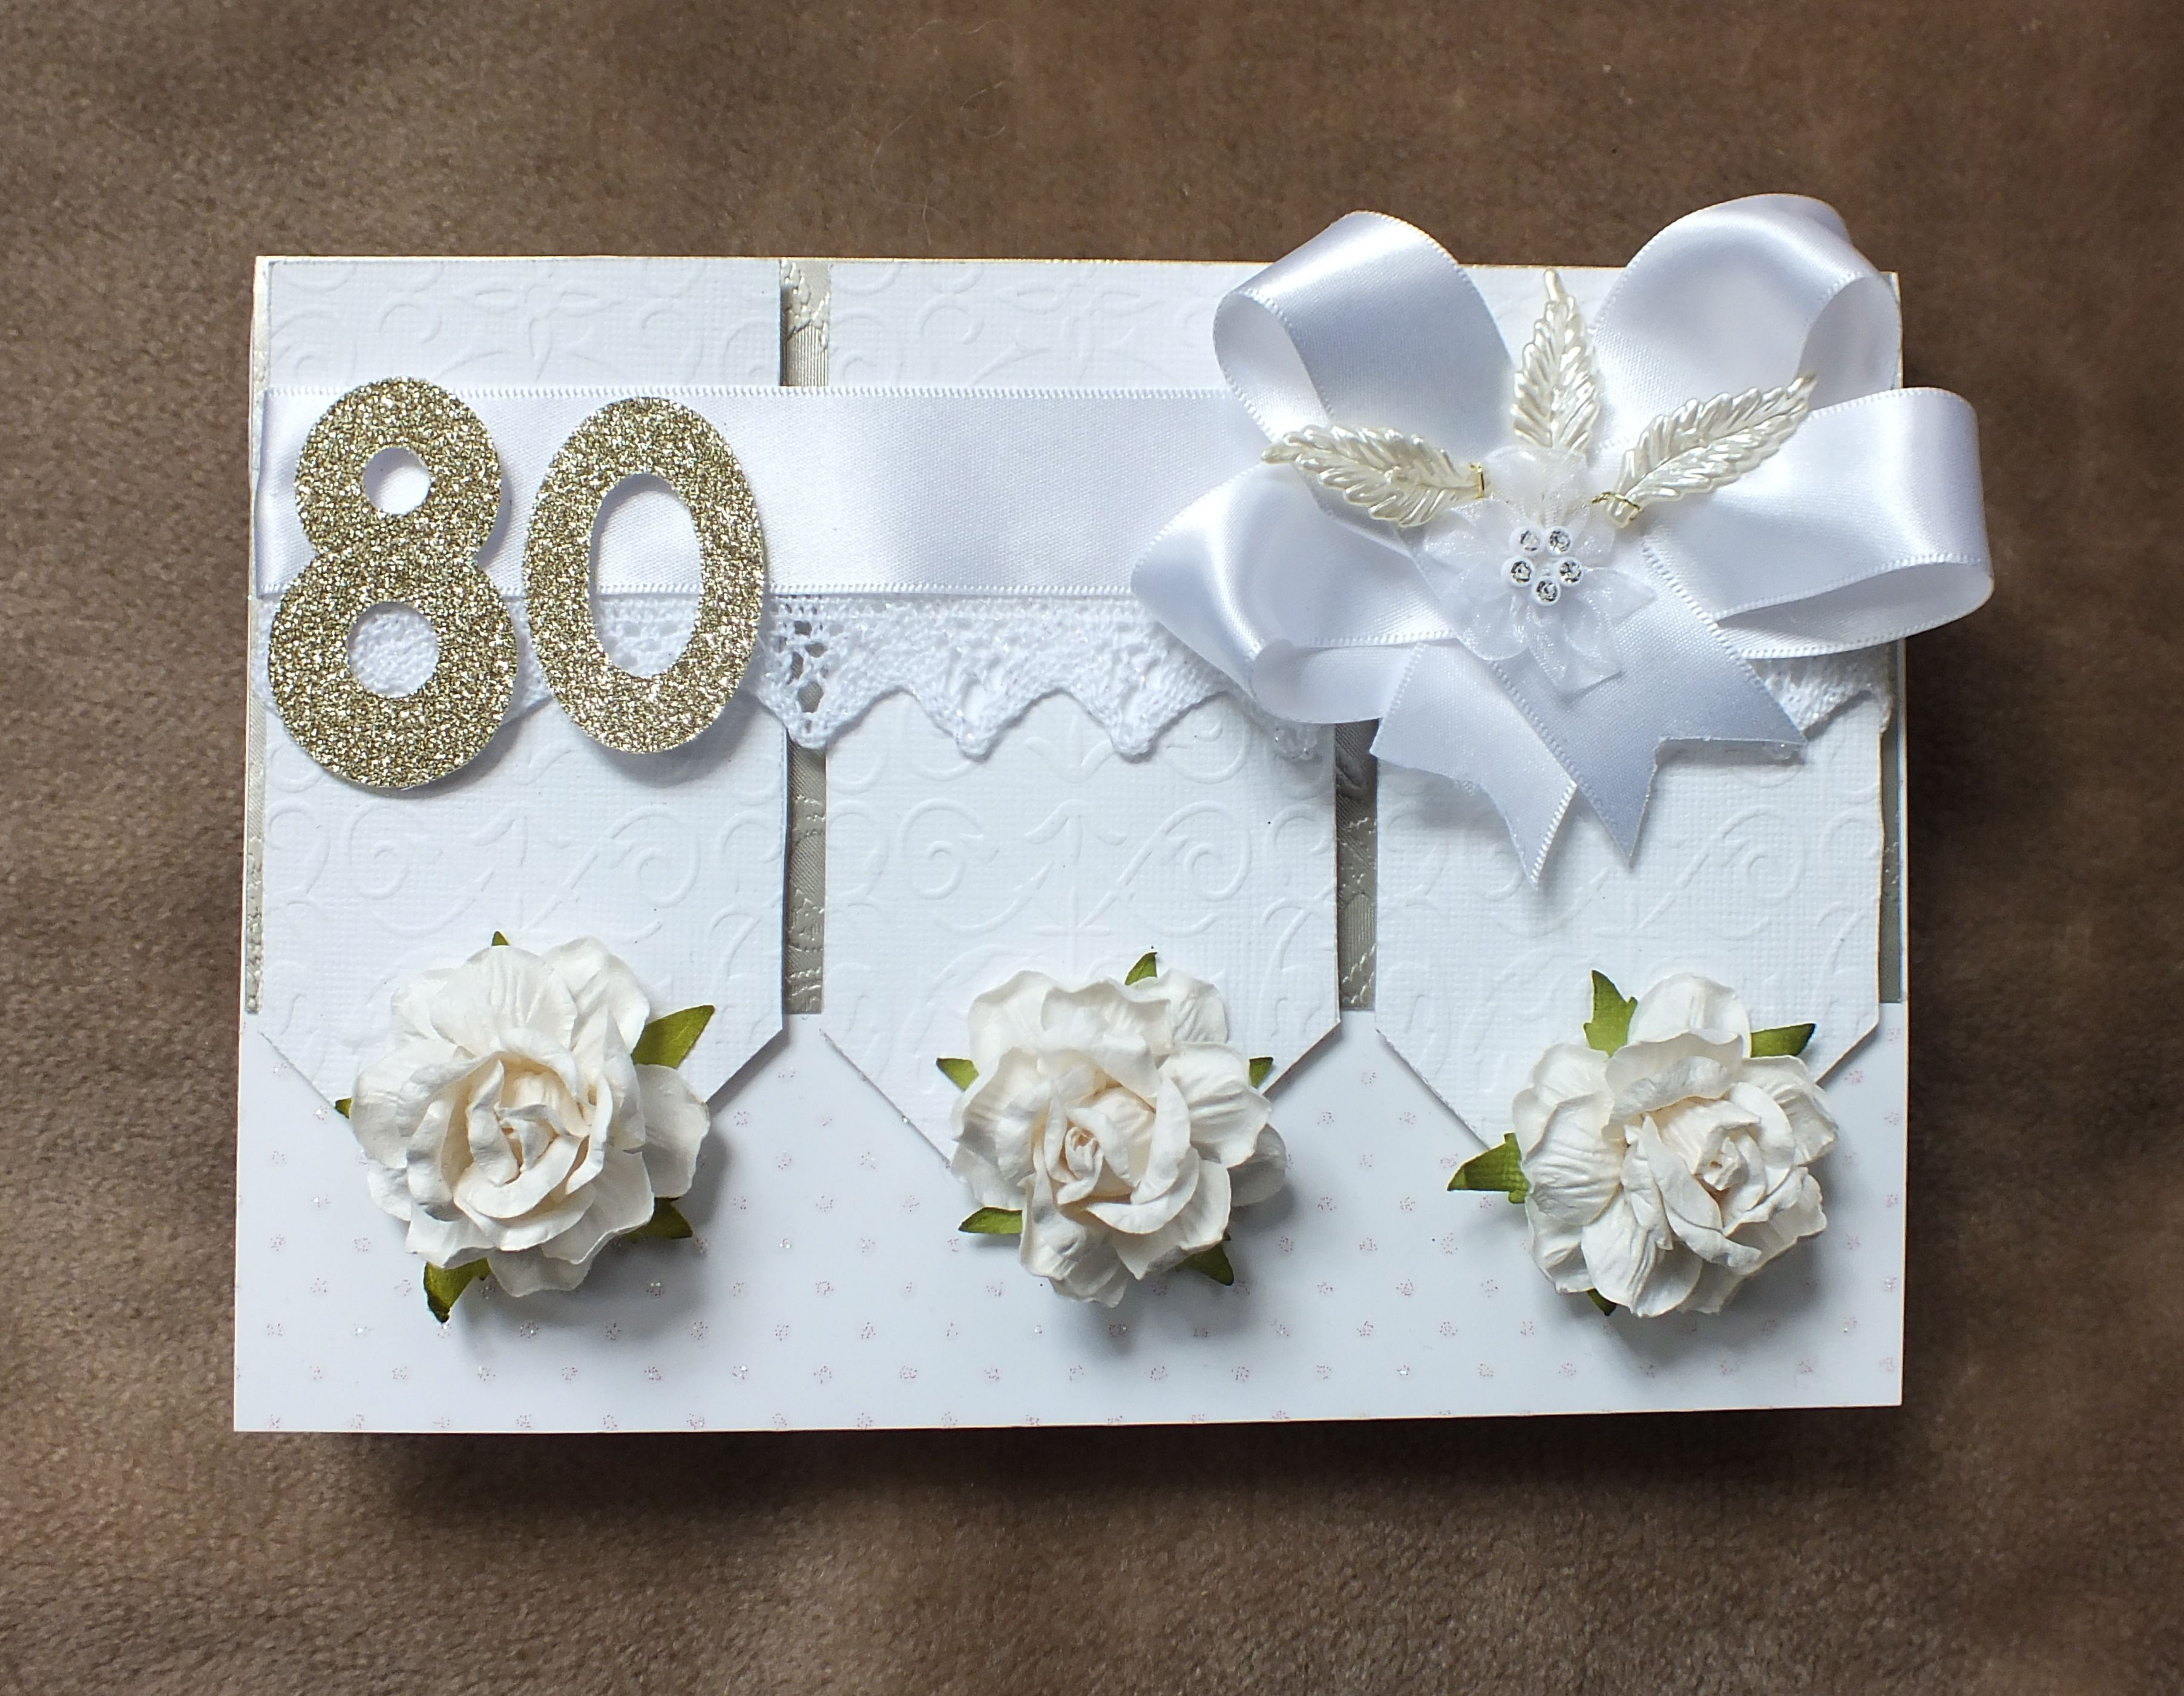 Handmade 80th birthday card by mandishella cards pinterest handmade 80th birthday card by mandishella bookmarktalkfo Image collections